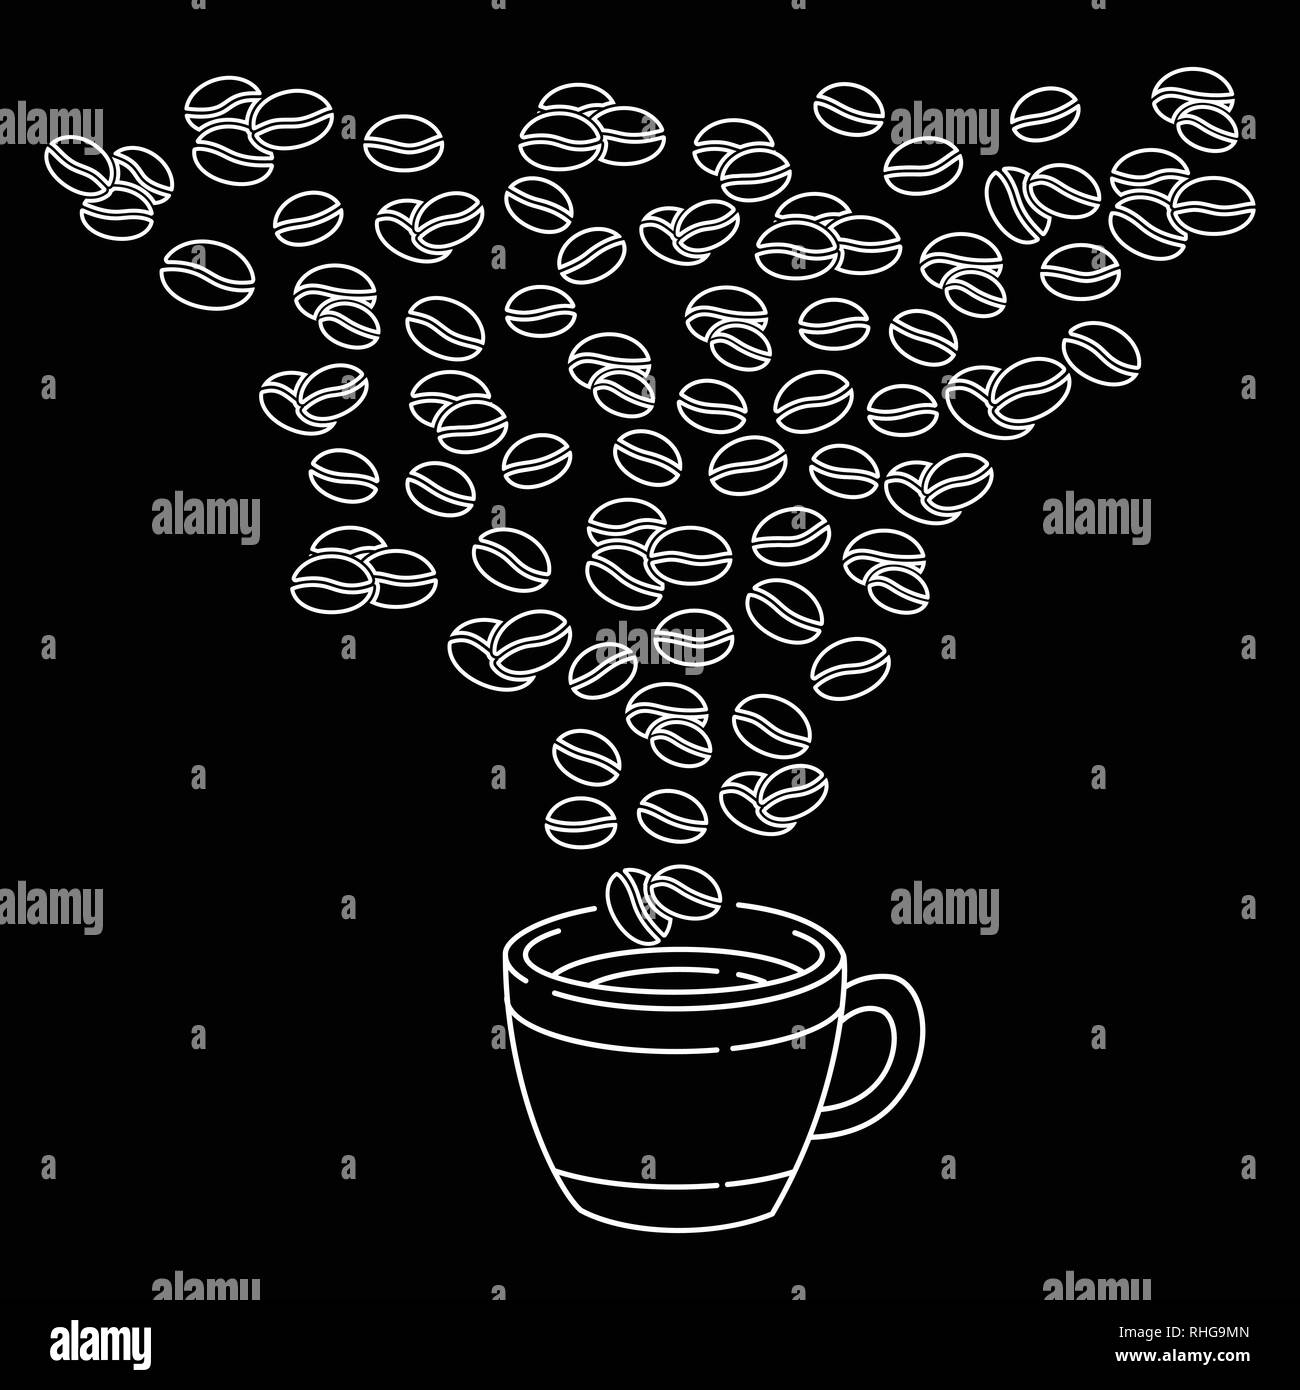 Hand drawn coffee beans and Coffee cup doodle style, isolated on black background. Ink drawing, coffee seeds. Packaging design, wallpaper, banner etc. - Stock Image